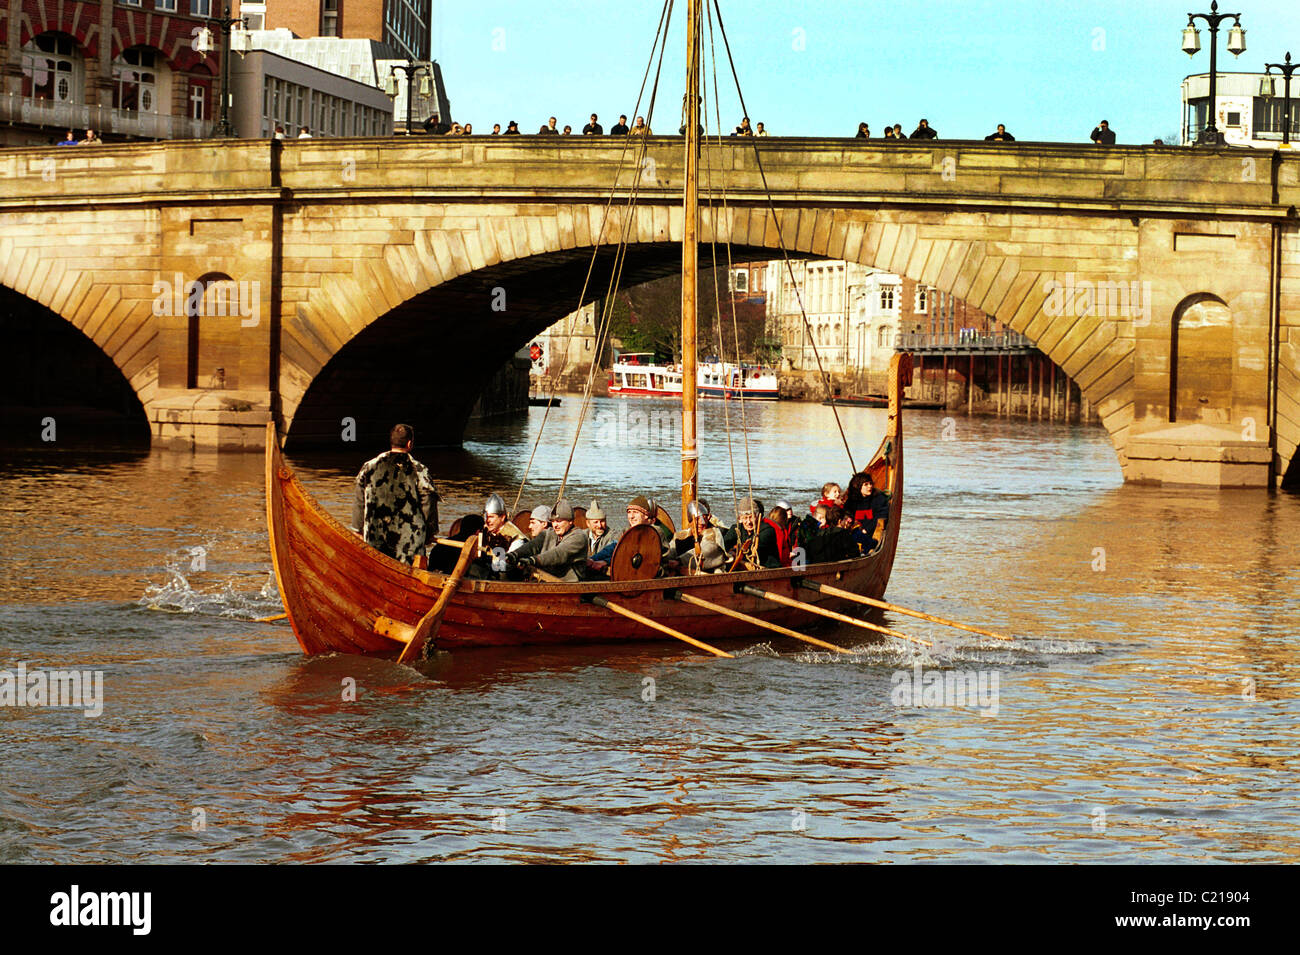 A replica viking longboat on the River Ouse at York, UK. - Stock Image